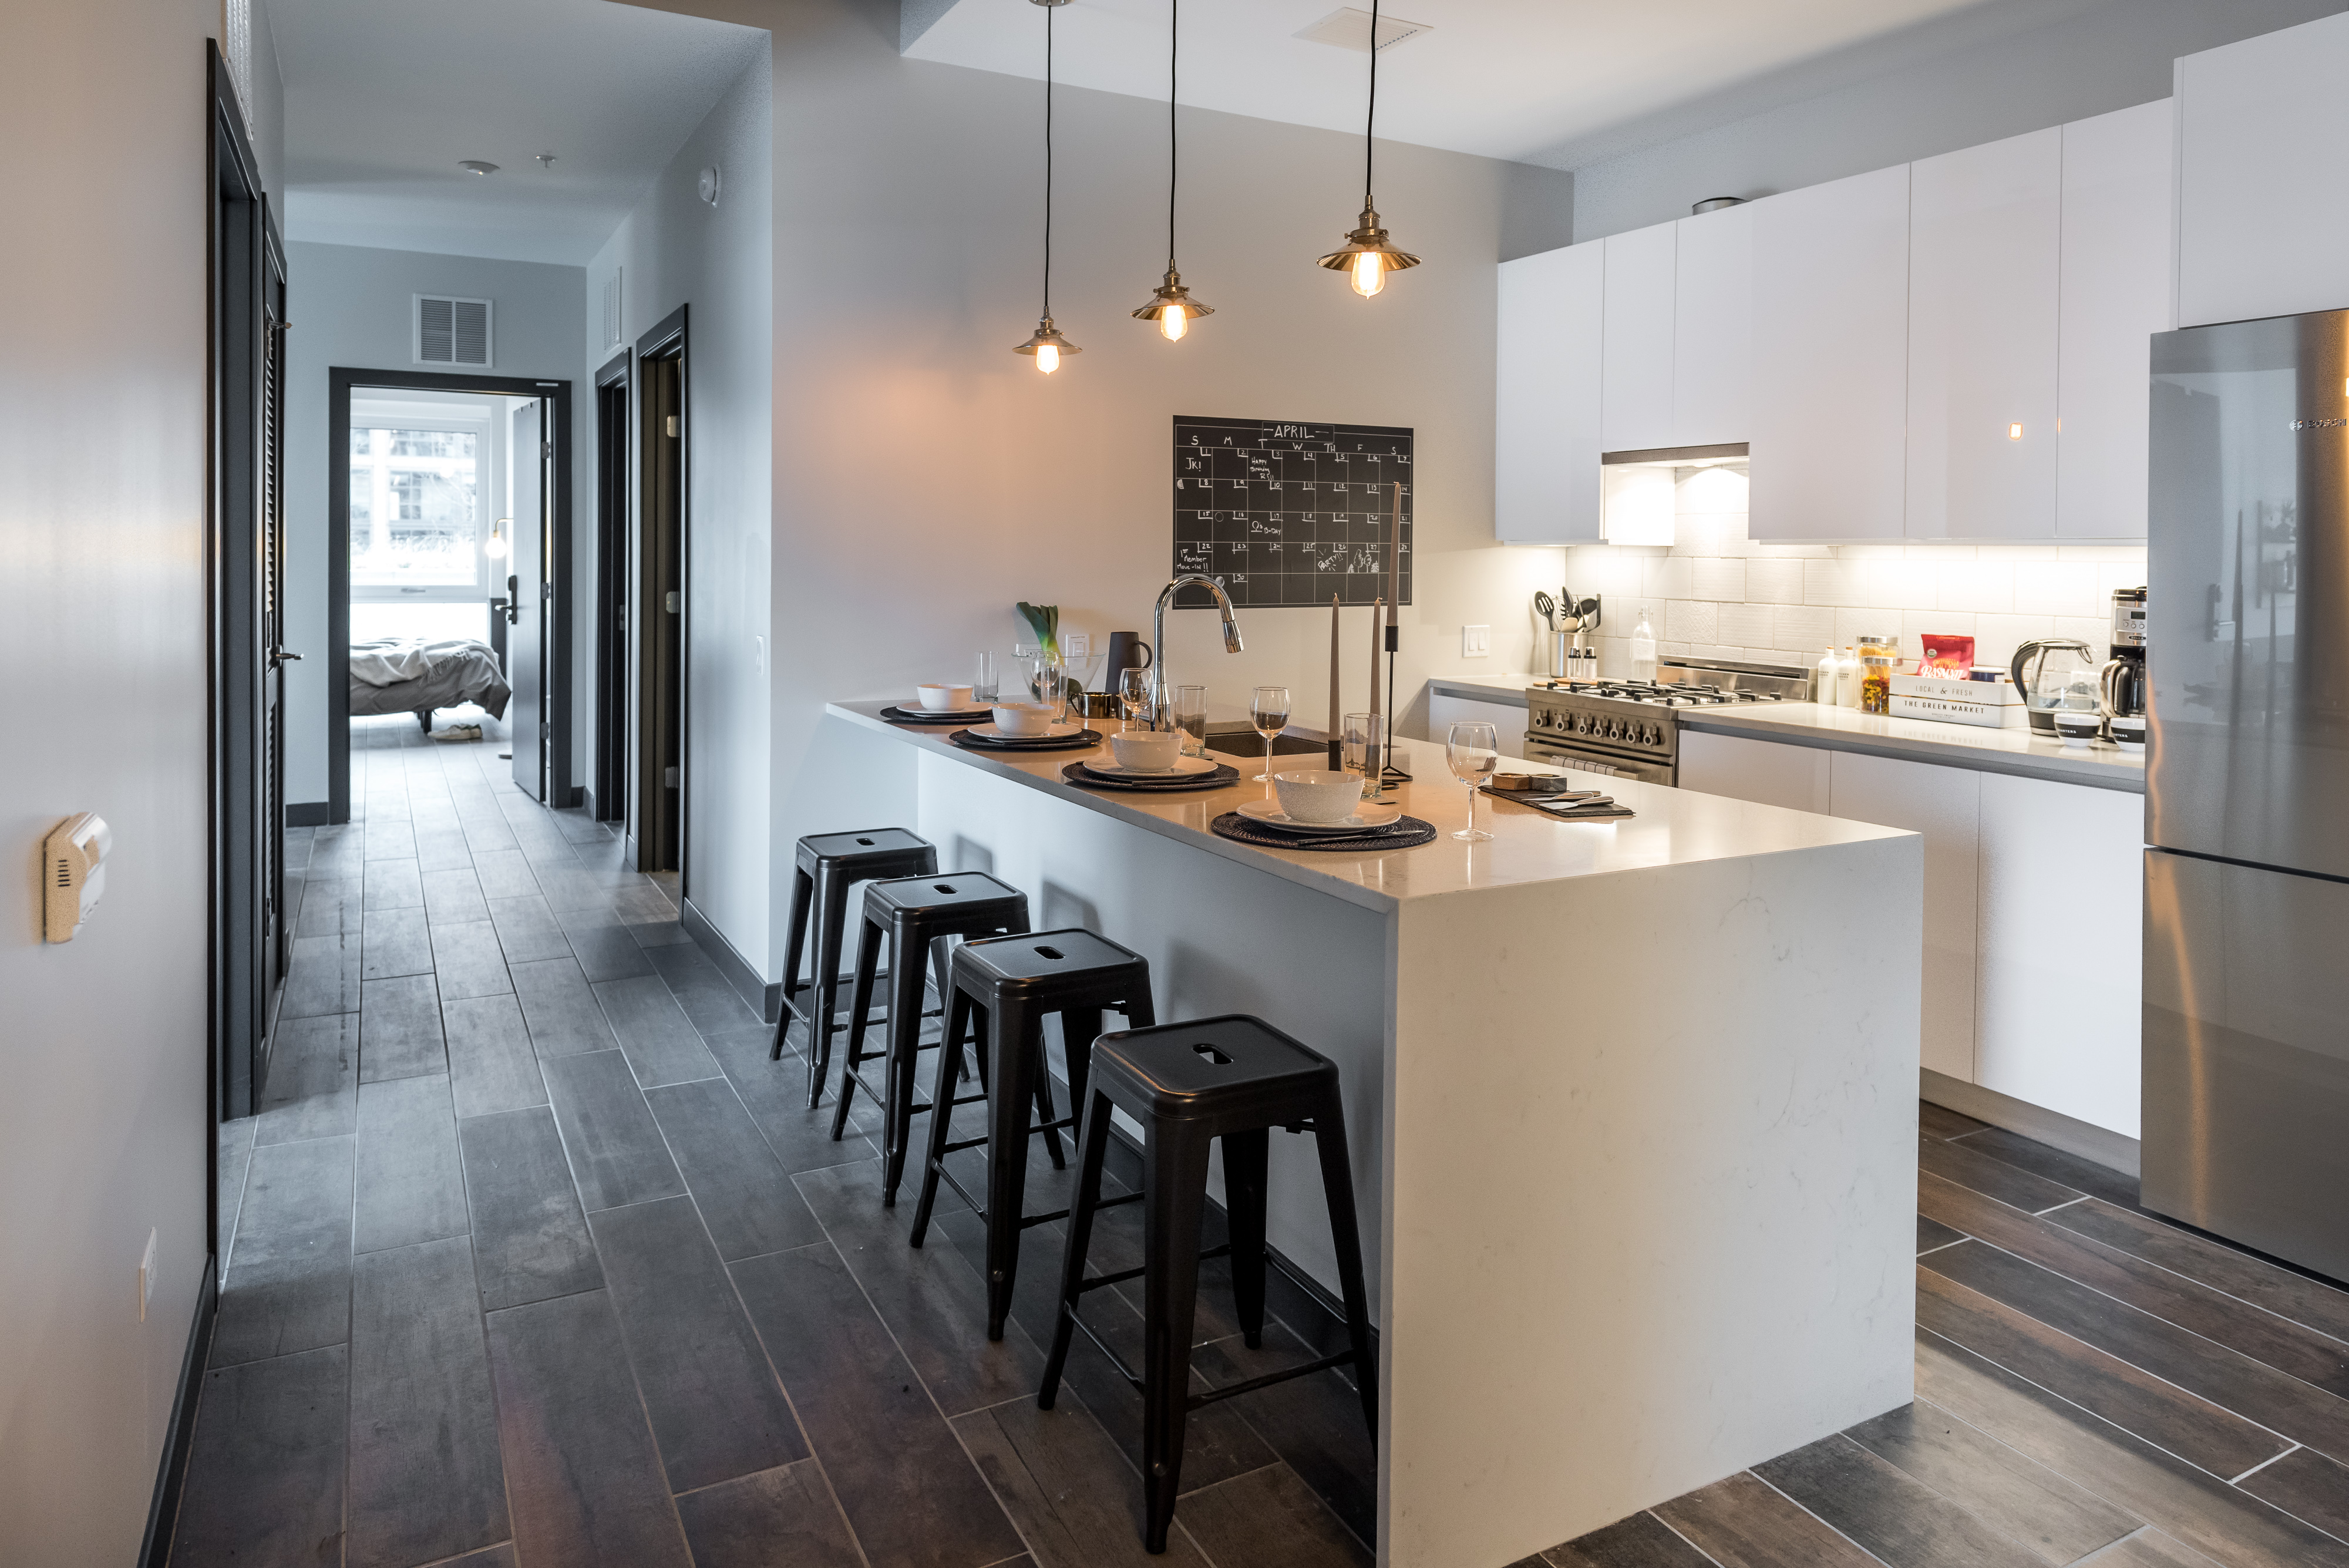 A sparse kitchen with modern appliances and an island.